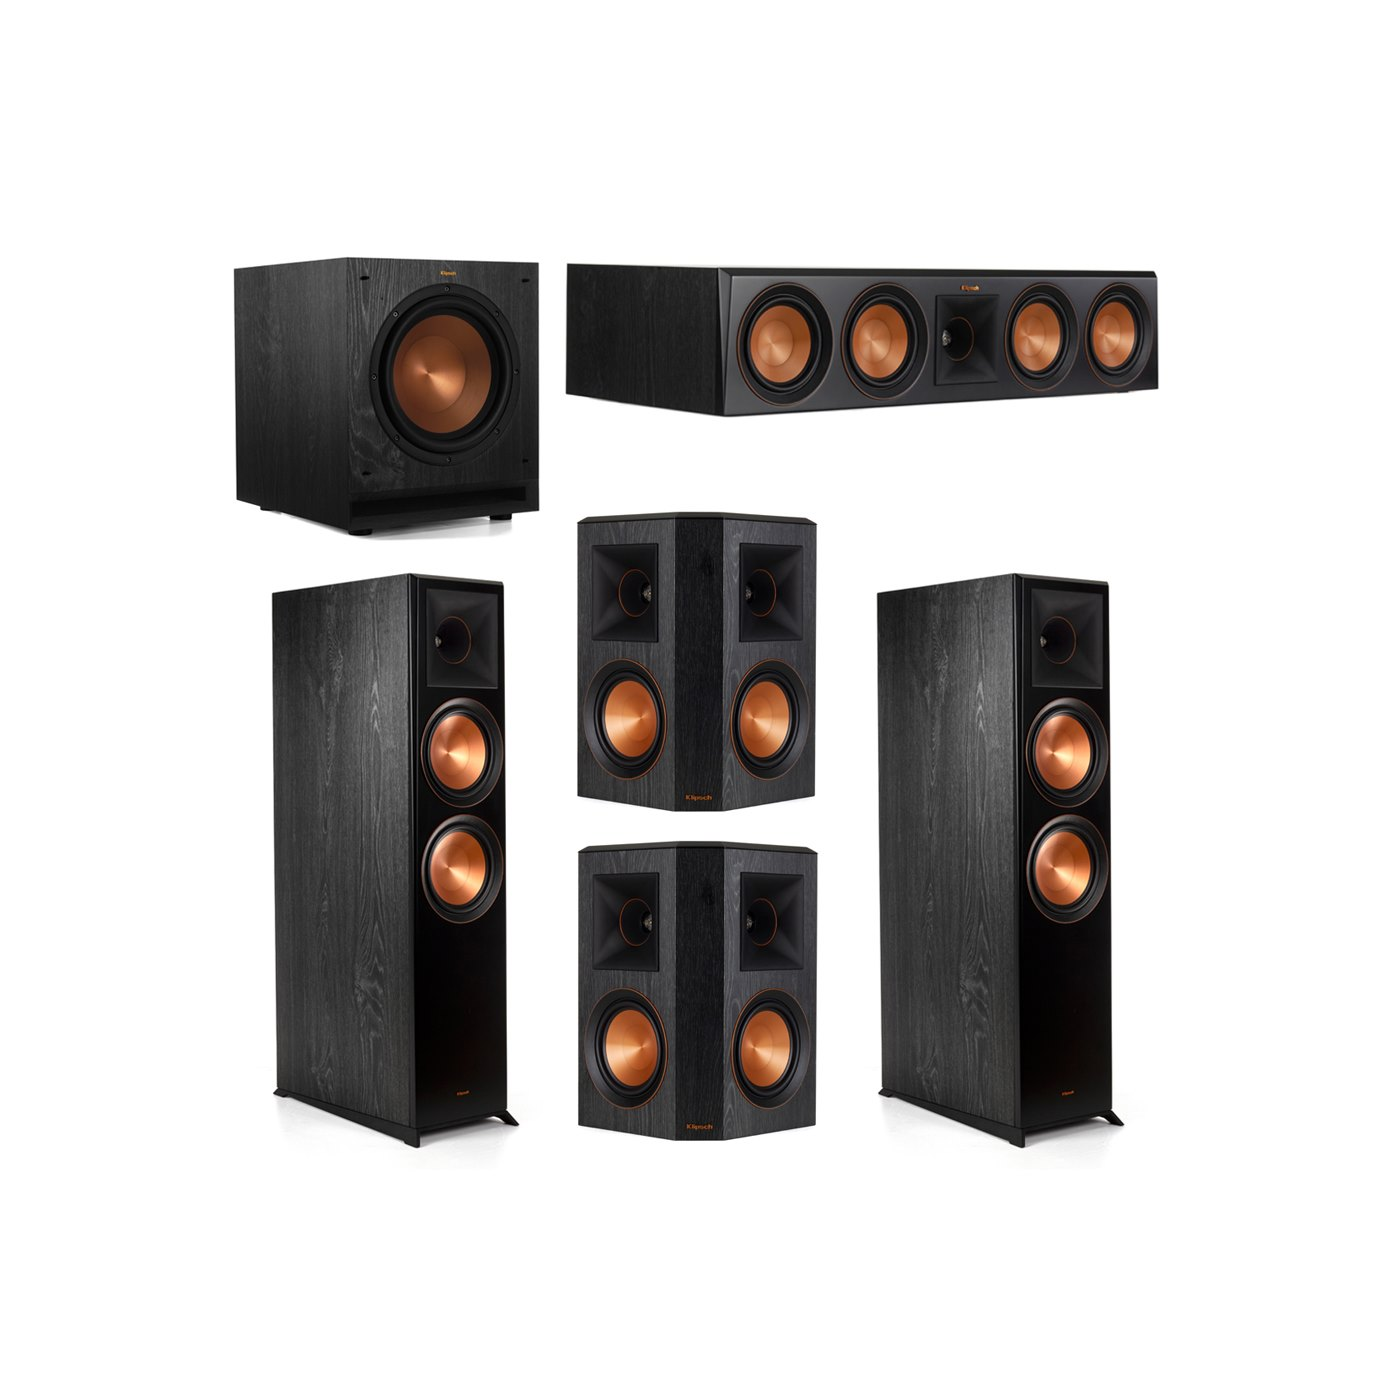 Klipsch 5.1.2 System - 2 RP-8060FA Dolby Atmos Speakers, 1 RP-504C, 2 RP-502S Speakers, 1 SPL-100